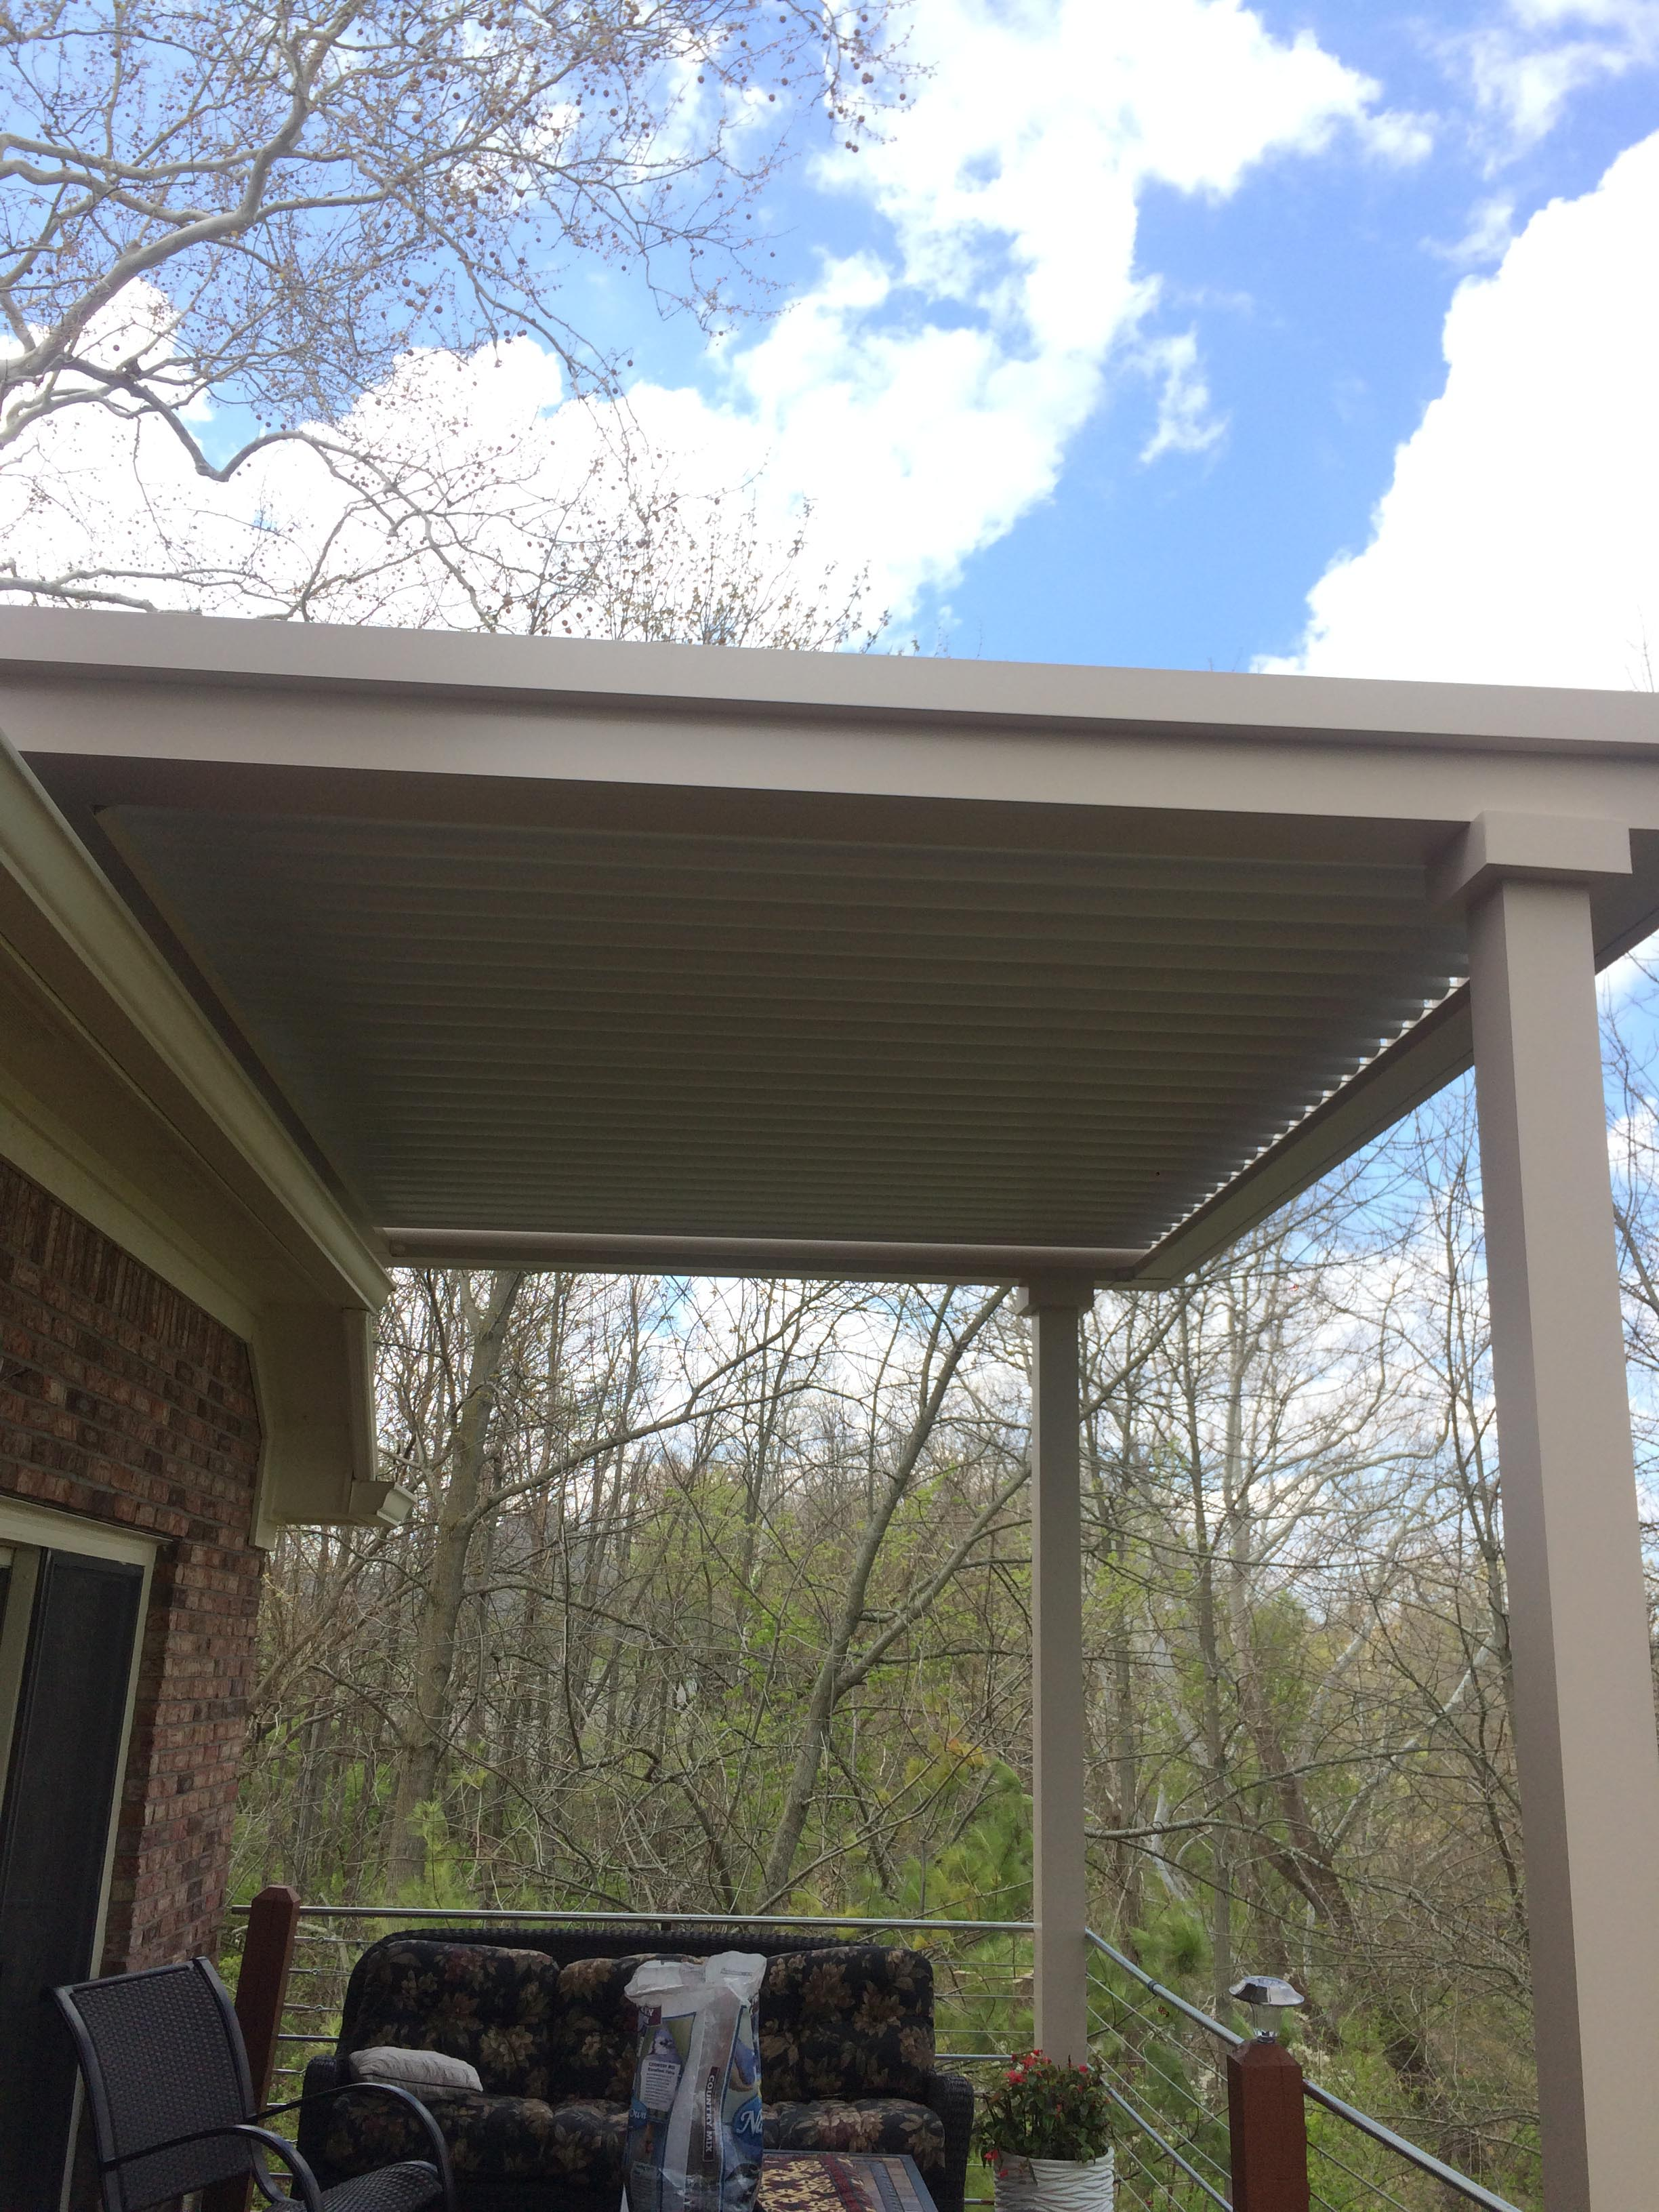 Brownsburgh, IN - Deck cover - roof mount